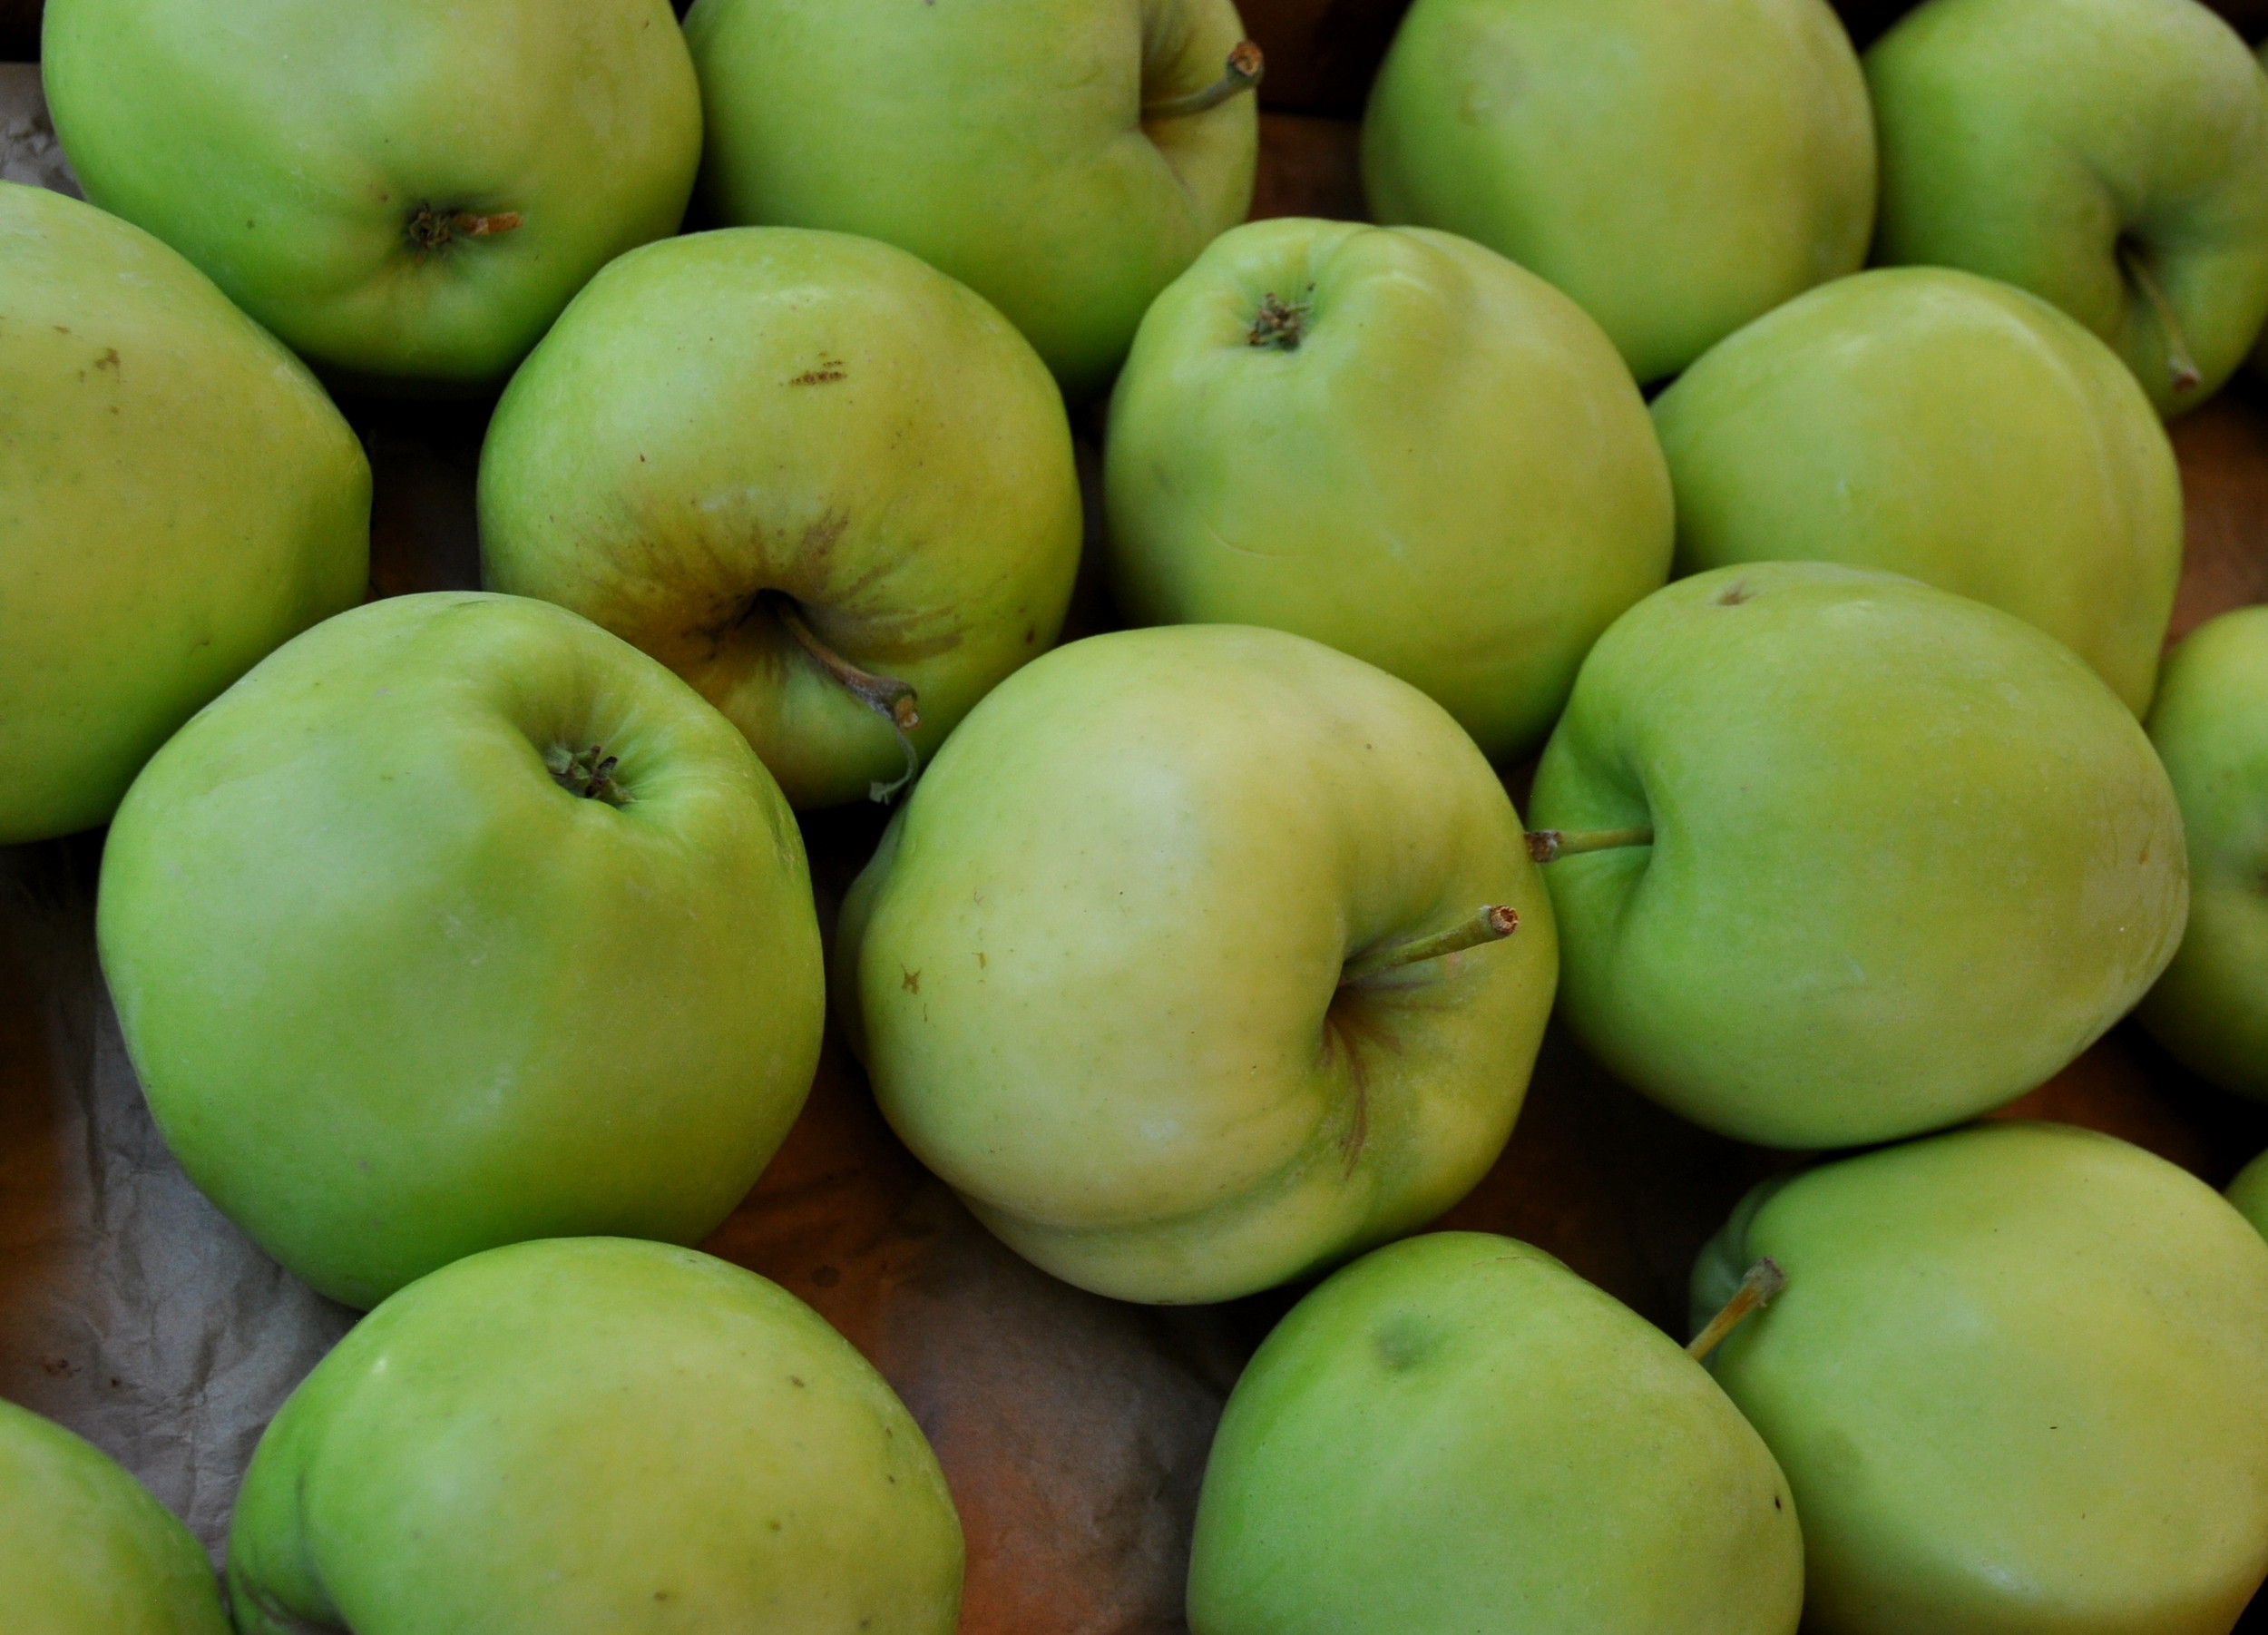 Golden Crisp apples from Collins Family Orchards. Photo copyright 2013 by Zachary D. Lyons.